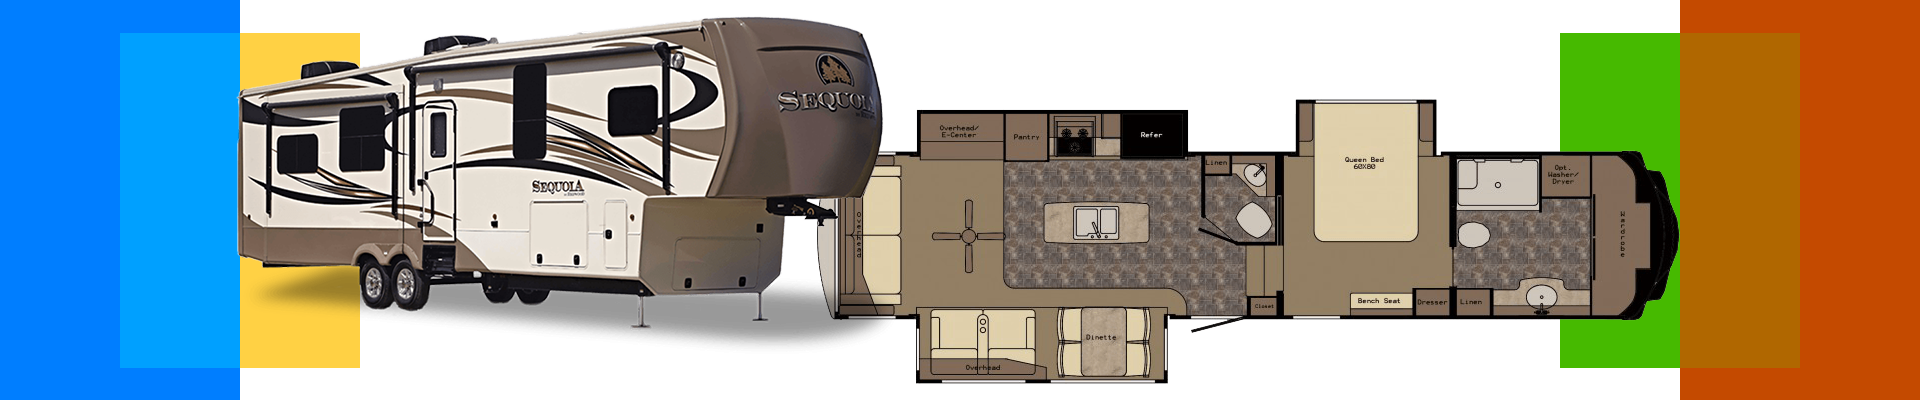 Camp all year round in the four-season Sequoia RV